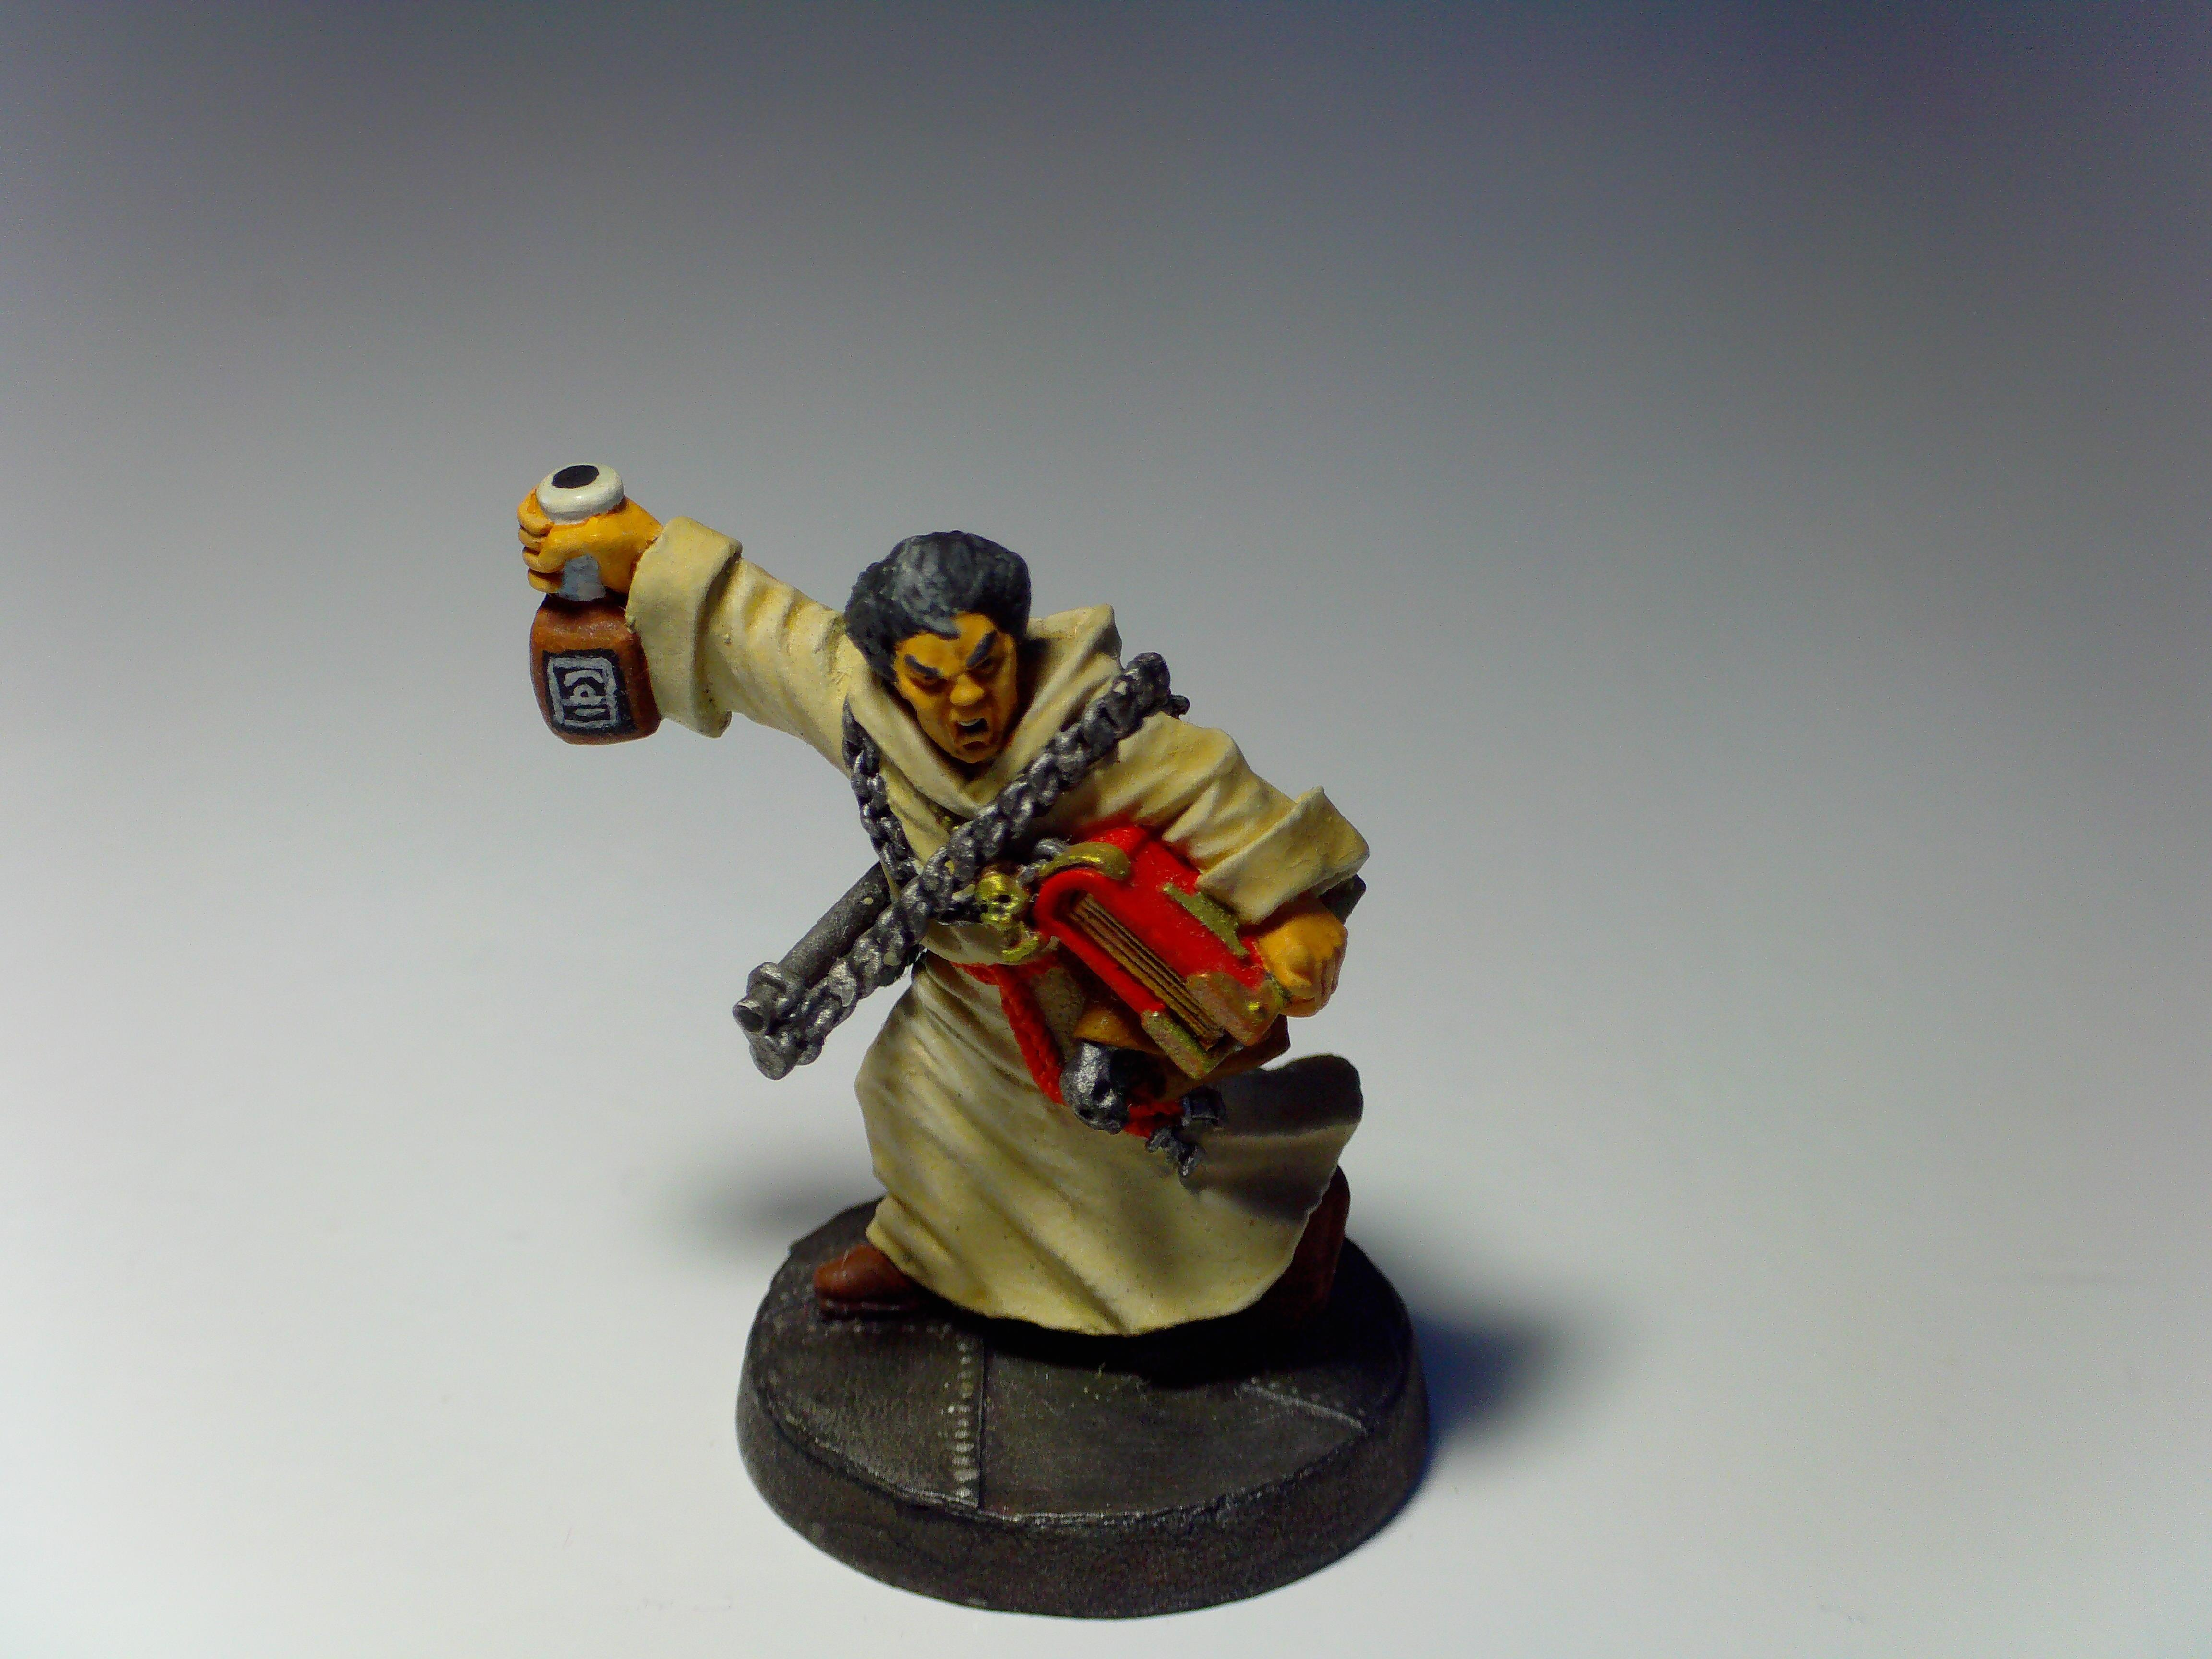 Bottle, Ministorum, Necromunda, Orlock, Preacher